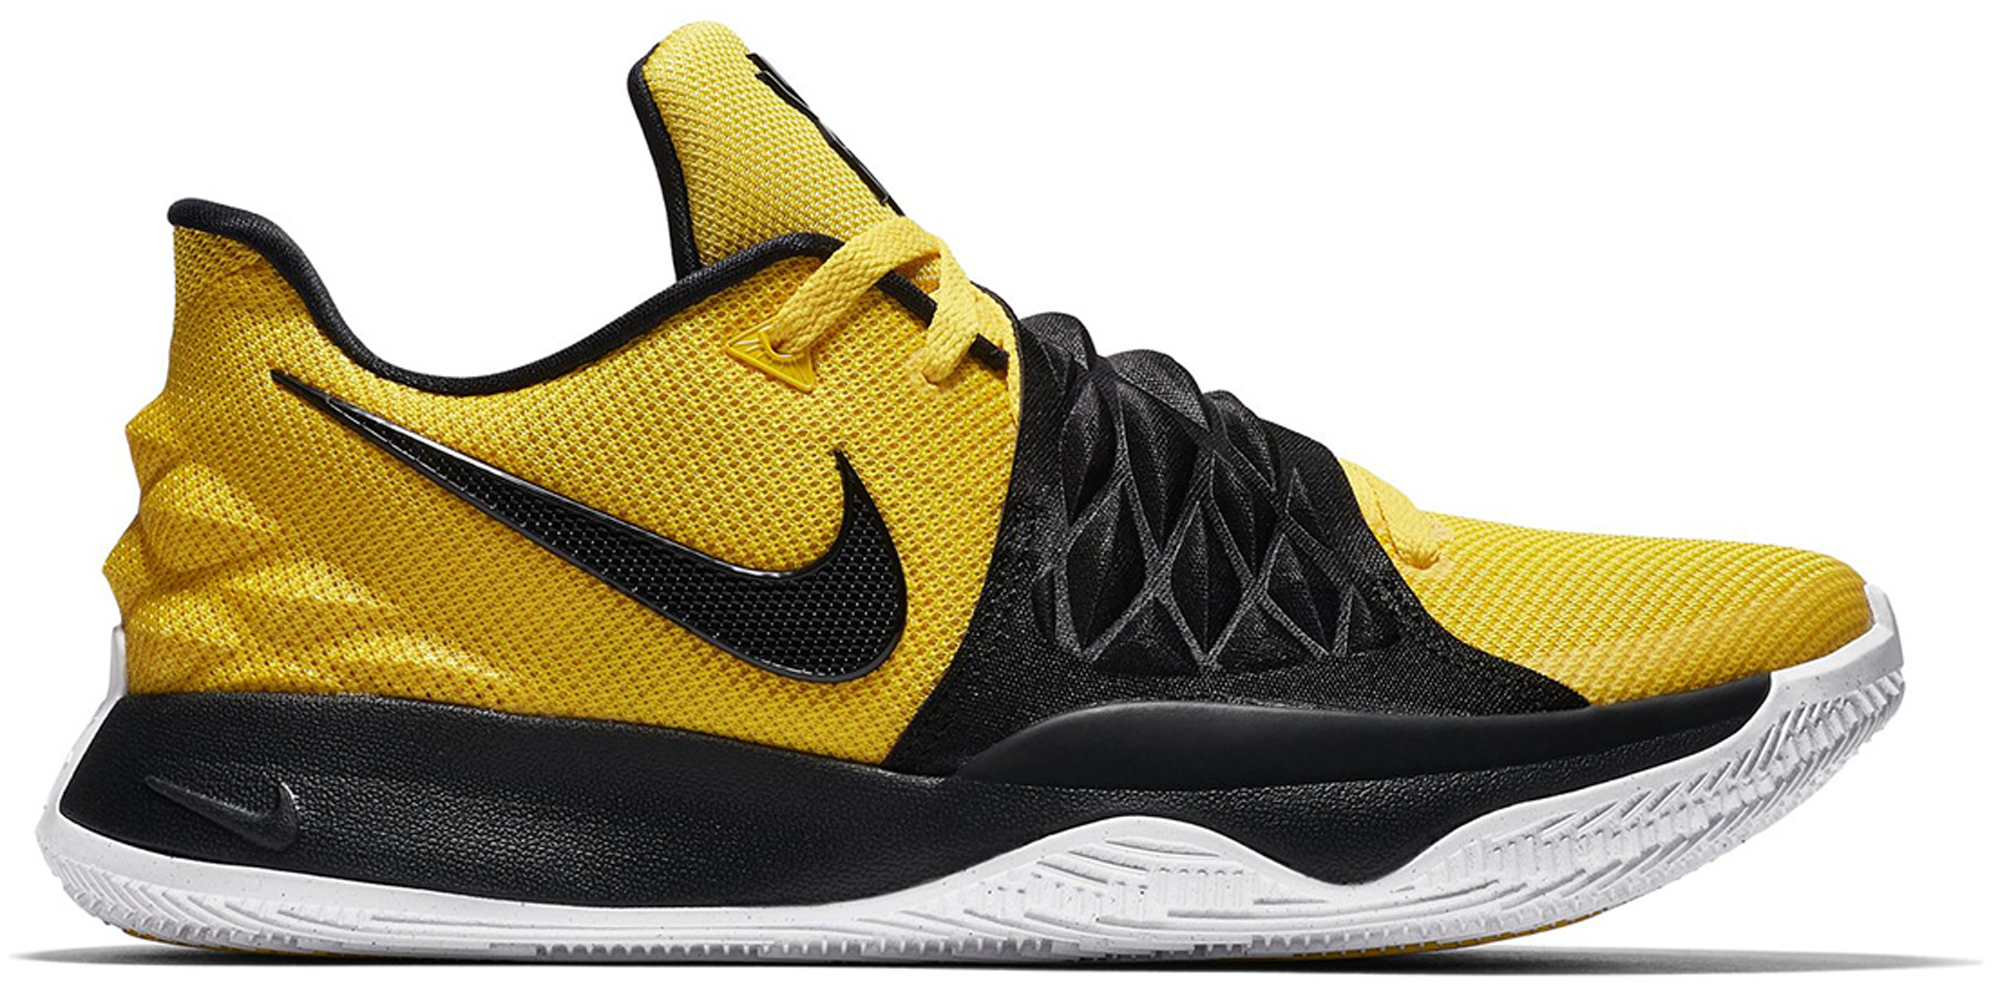 8662f2f65b28 ... get kyrie low 1 amarillo 59818 99332